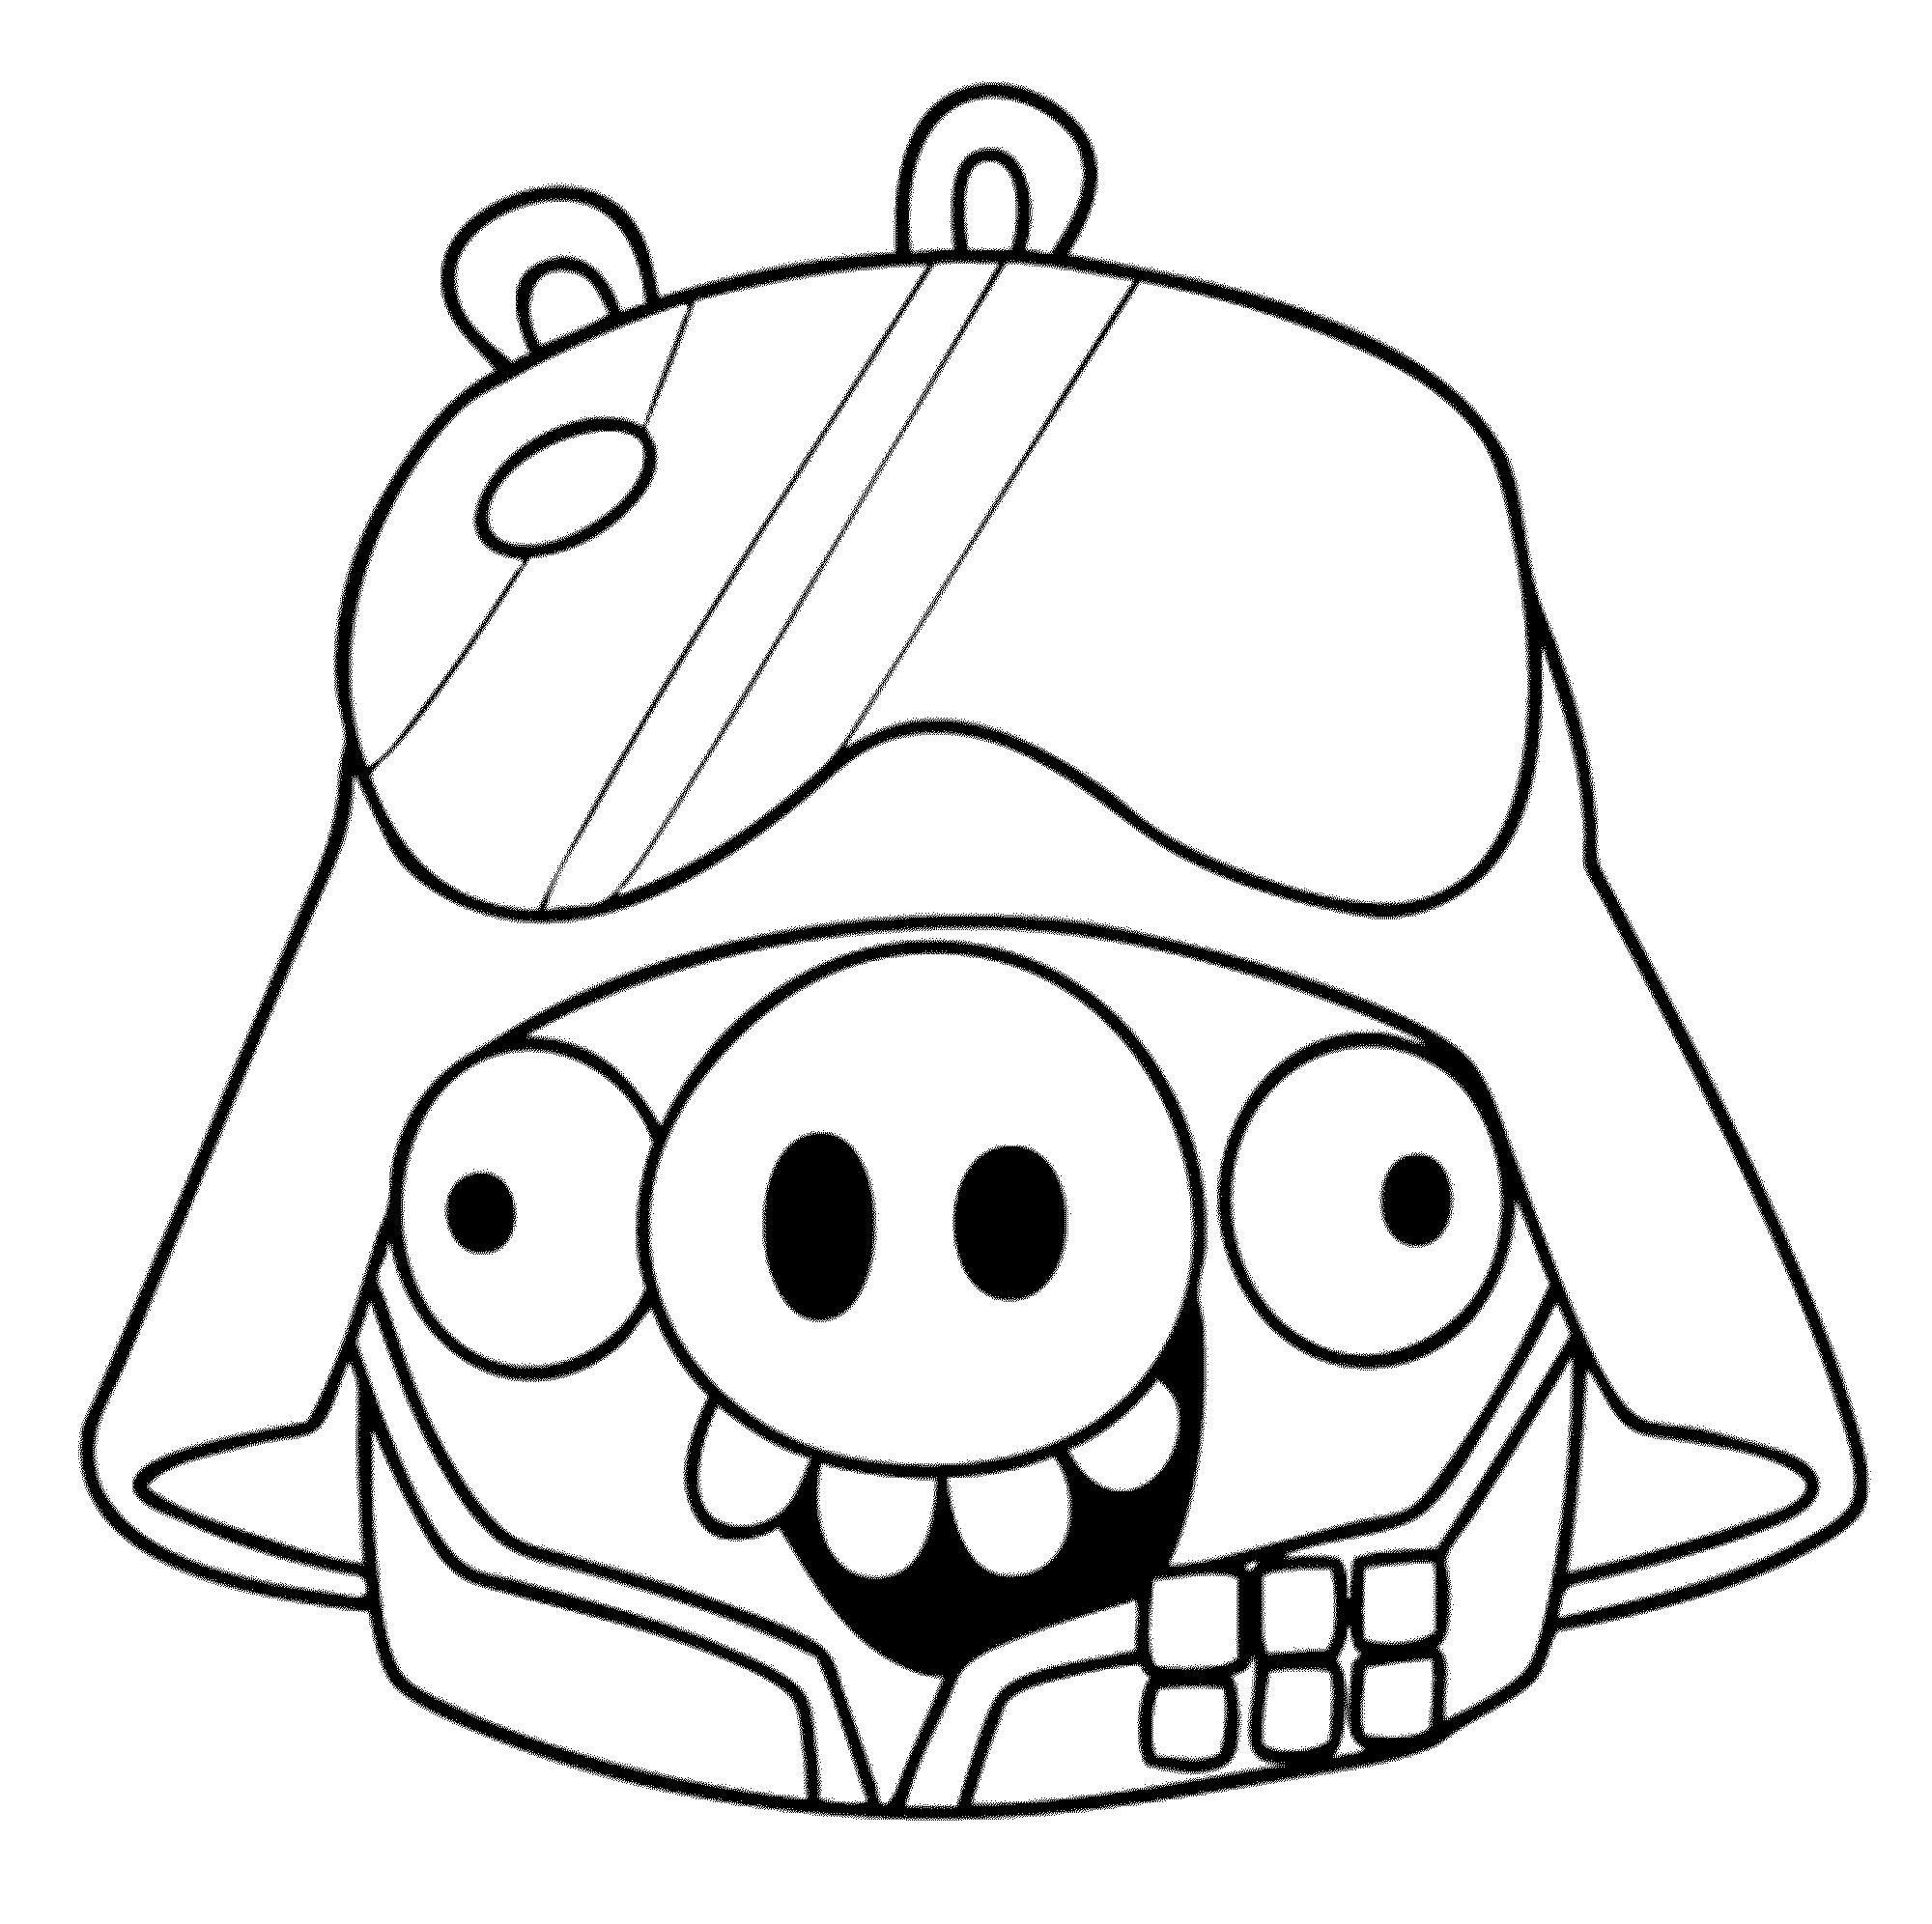 2000x1992 Angry Birds Helmet Pig Coloring Pages Coloring Sheets